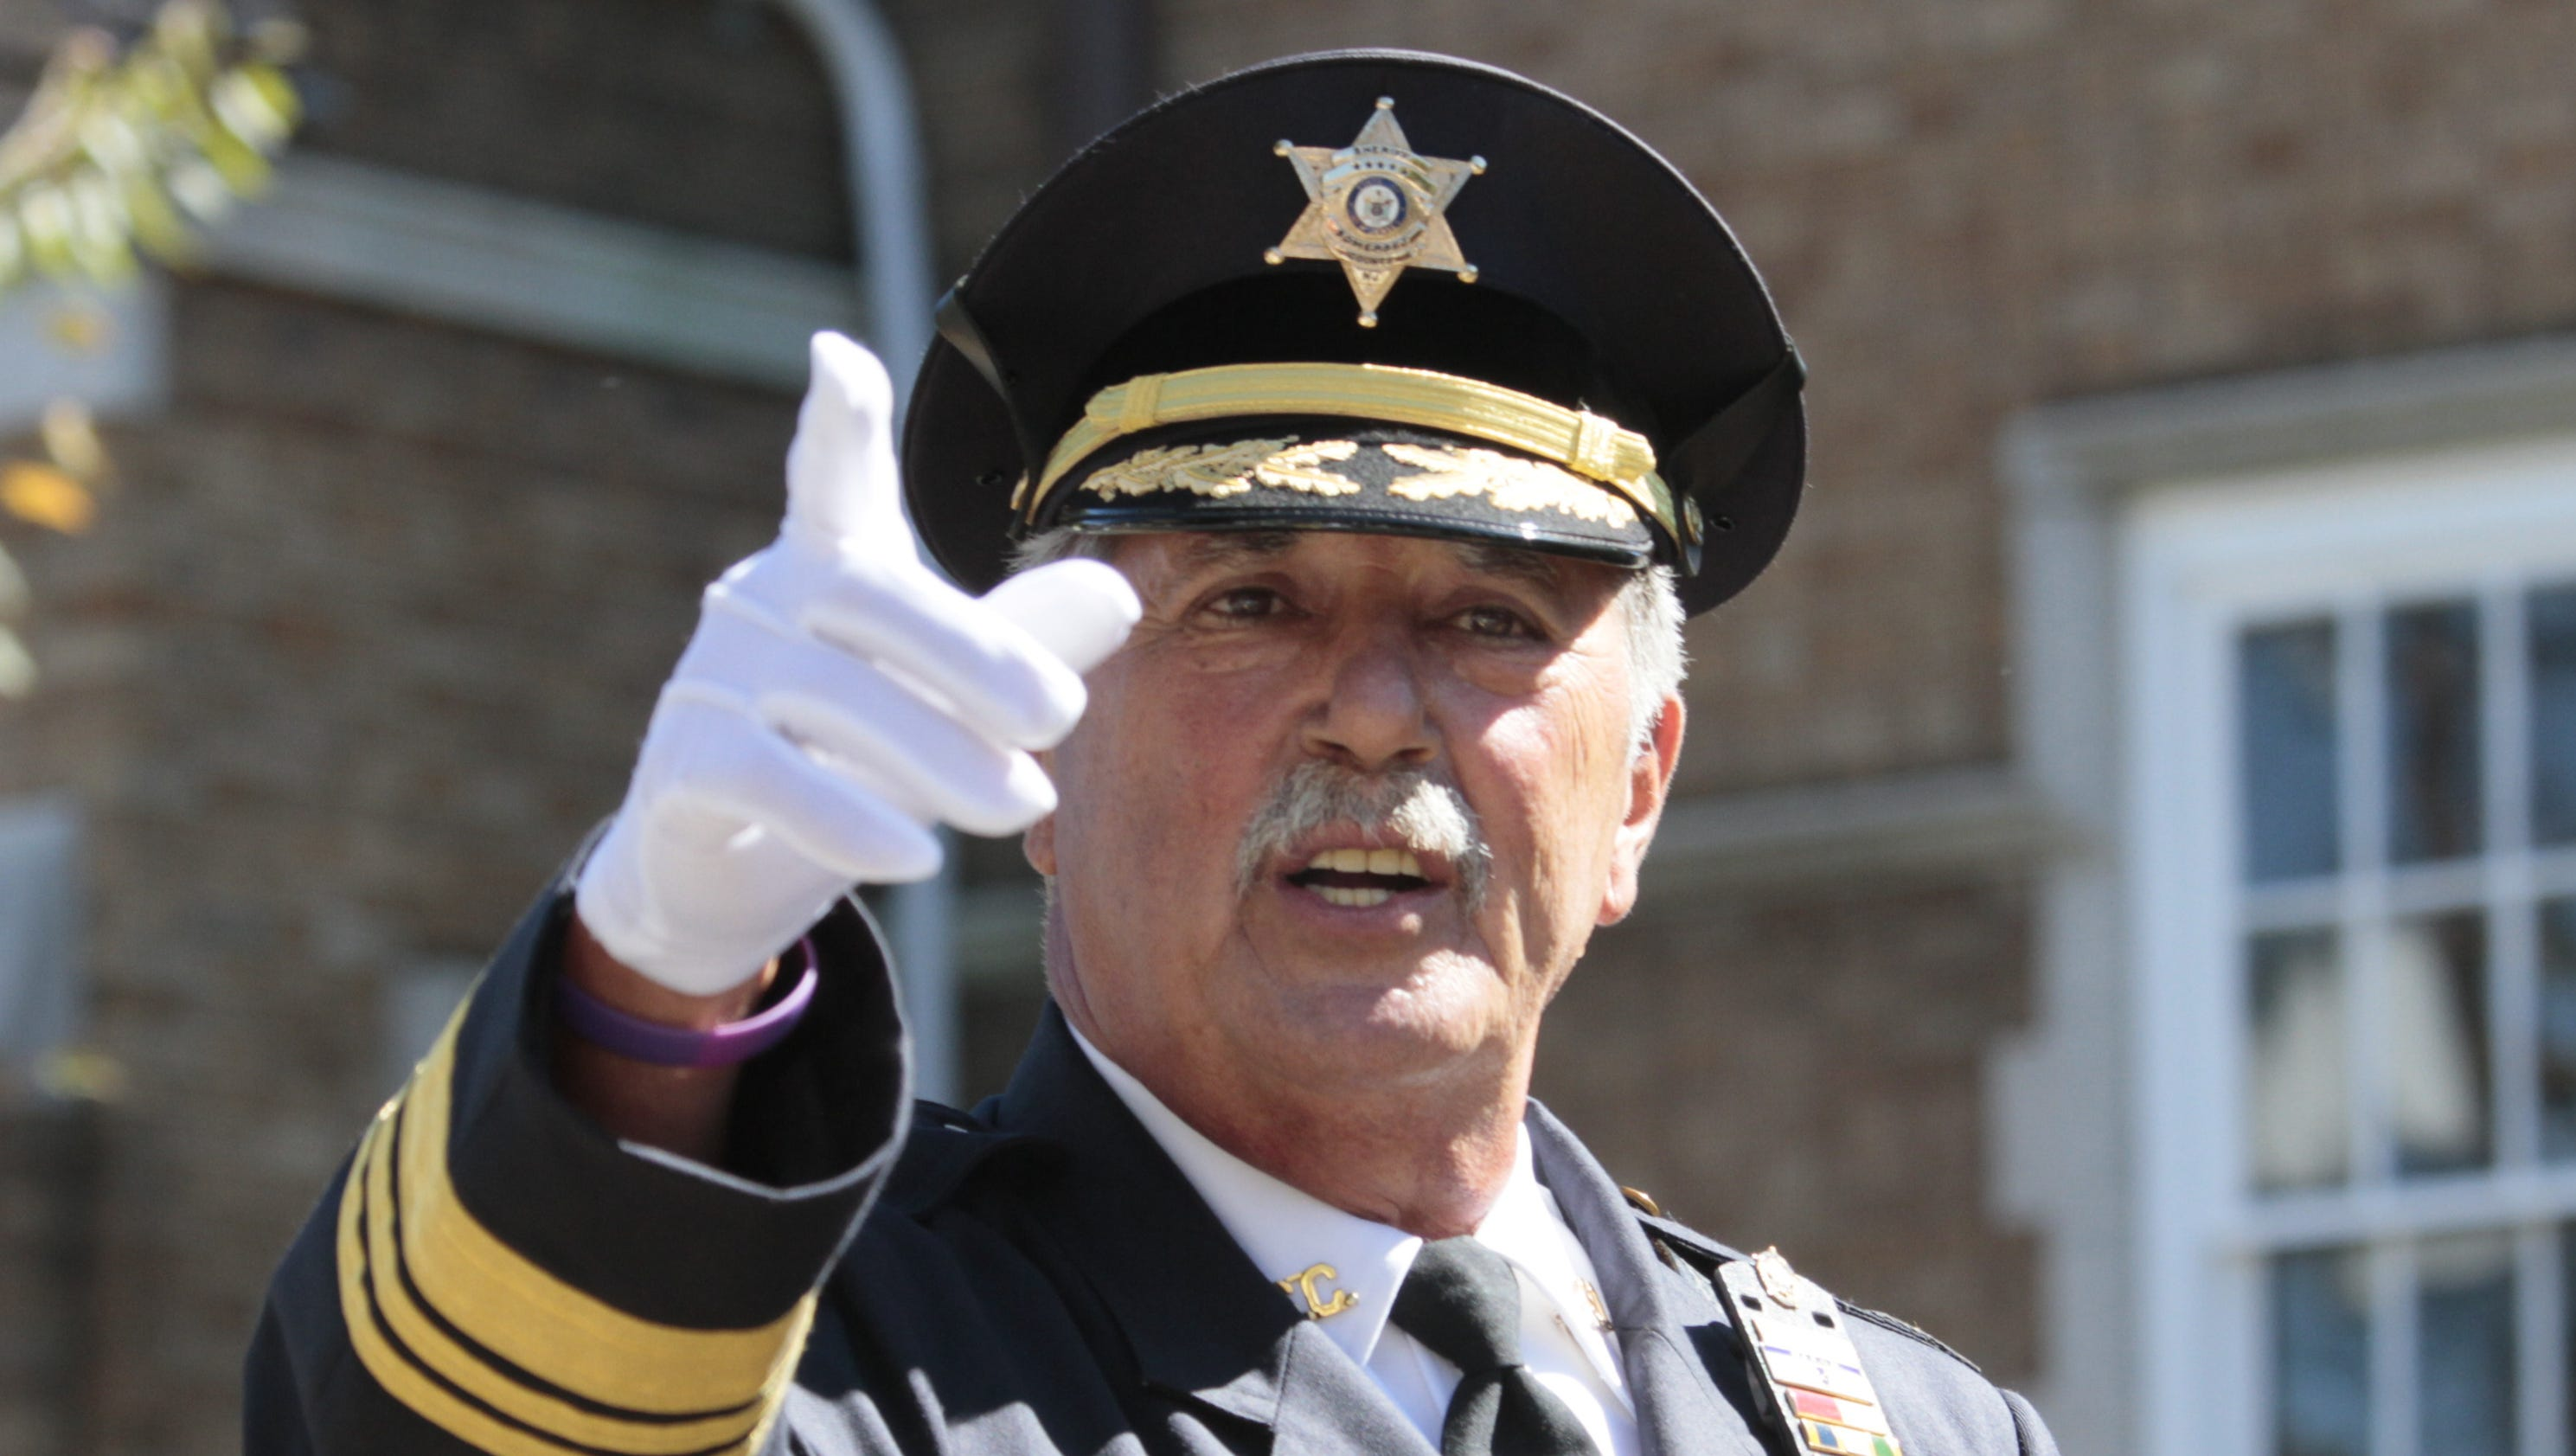 Scammers clone Somerset County sheriff's phone number